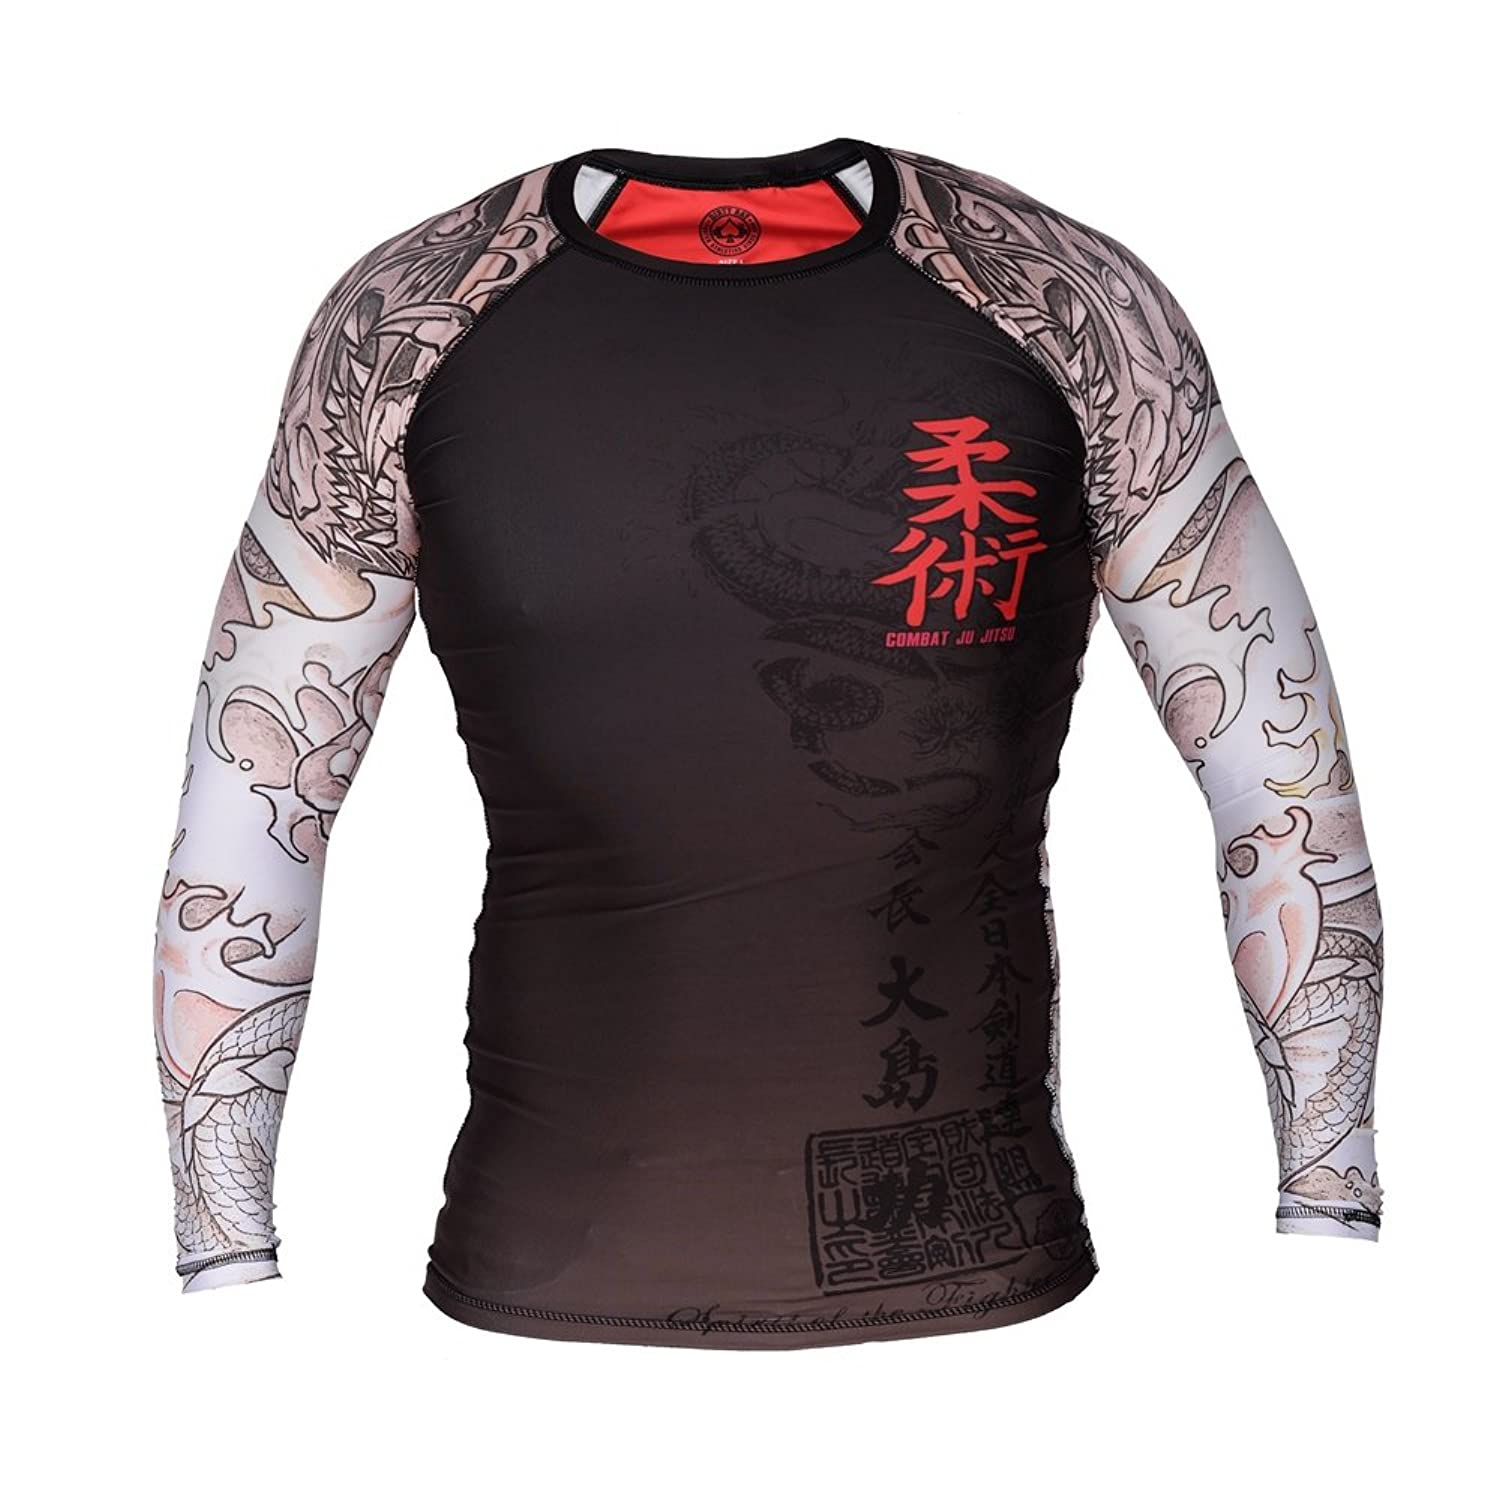 Image of Dirty Ray Long Sleeve Rash Guard COMBAT JU JITSU